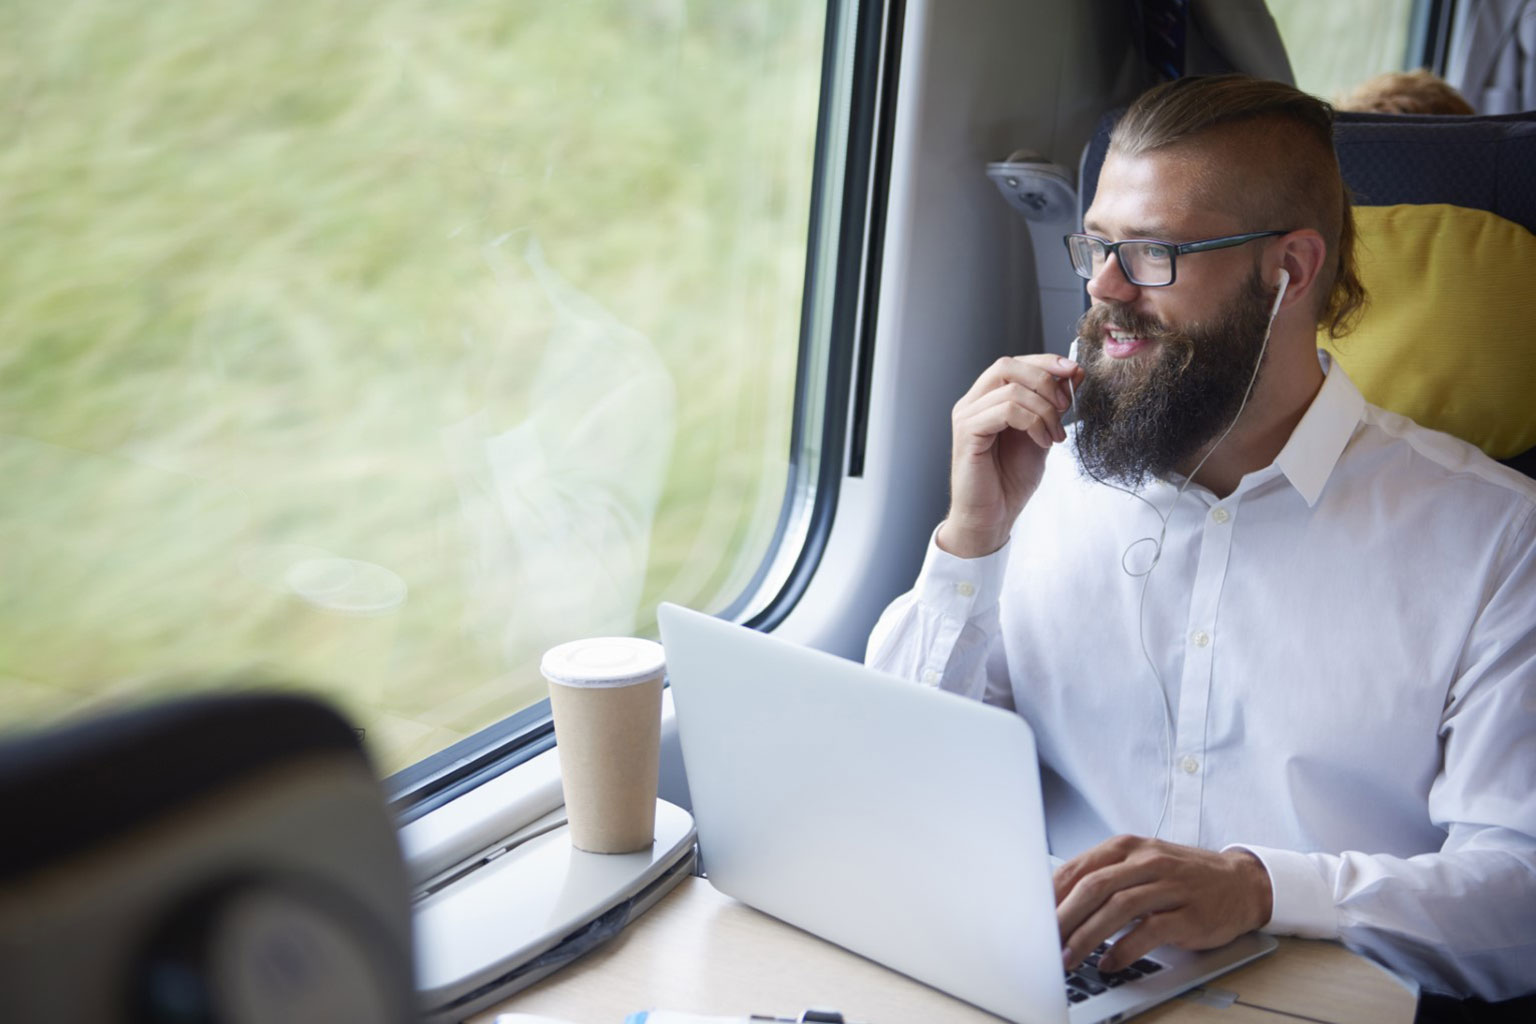 Person on train with laptop